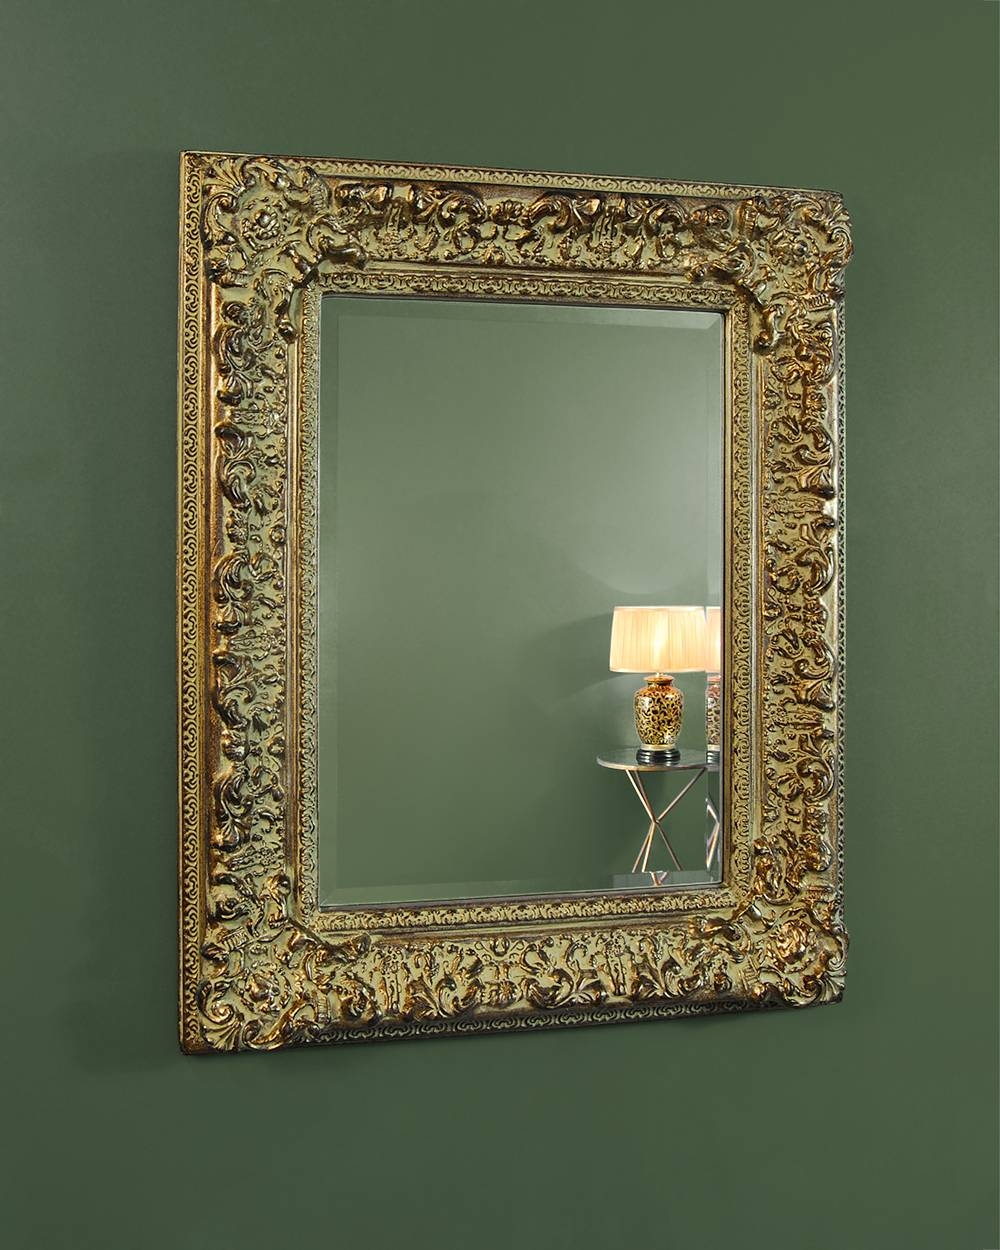 Fancy Mirrors For Bedrooms Decorative Mirrors Decorative Wall throughout Small Ornate Mirrors (Image 10 of 25)